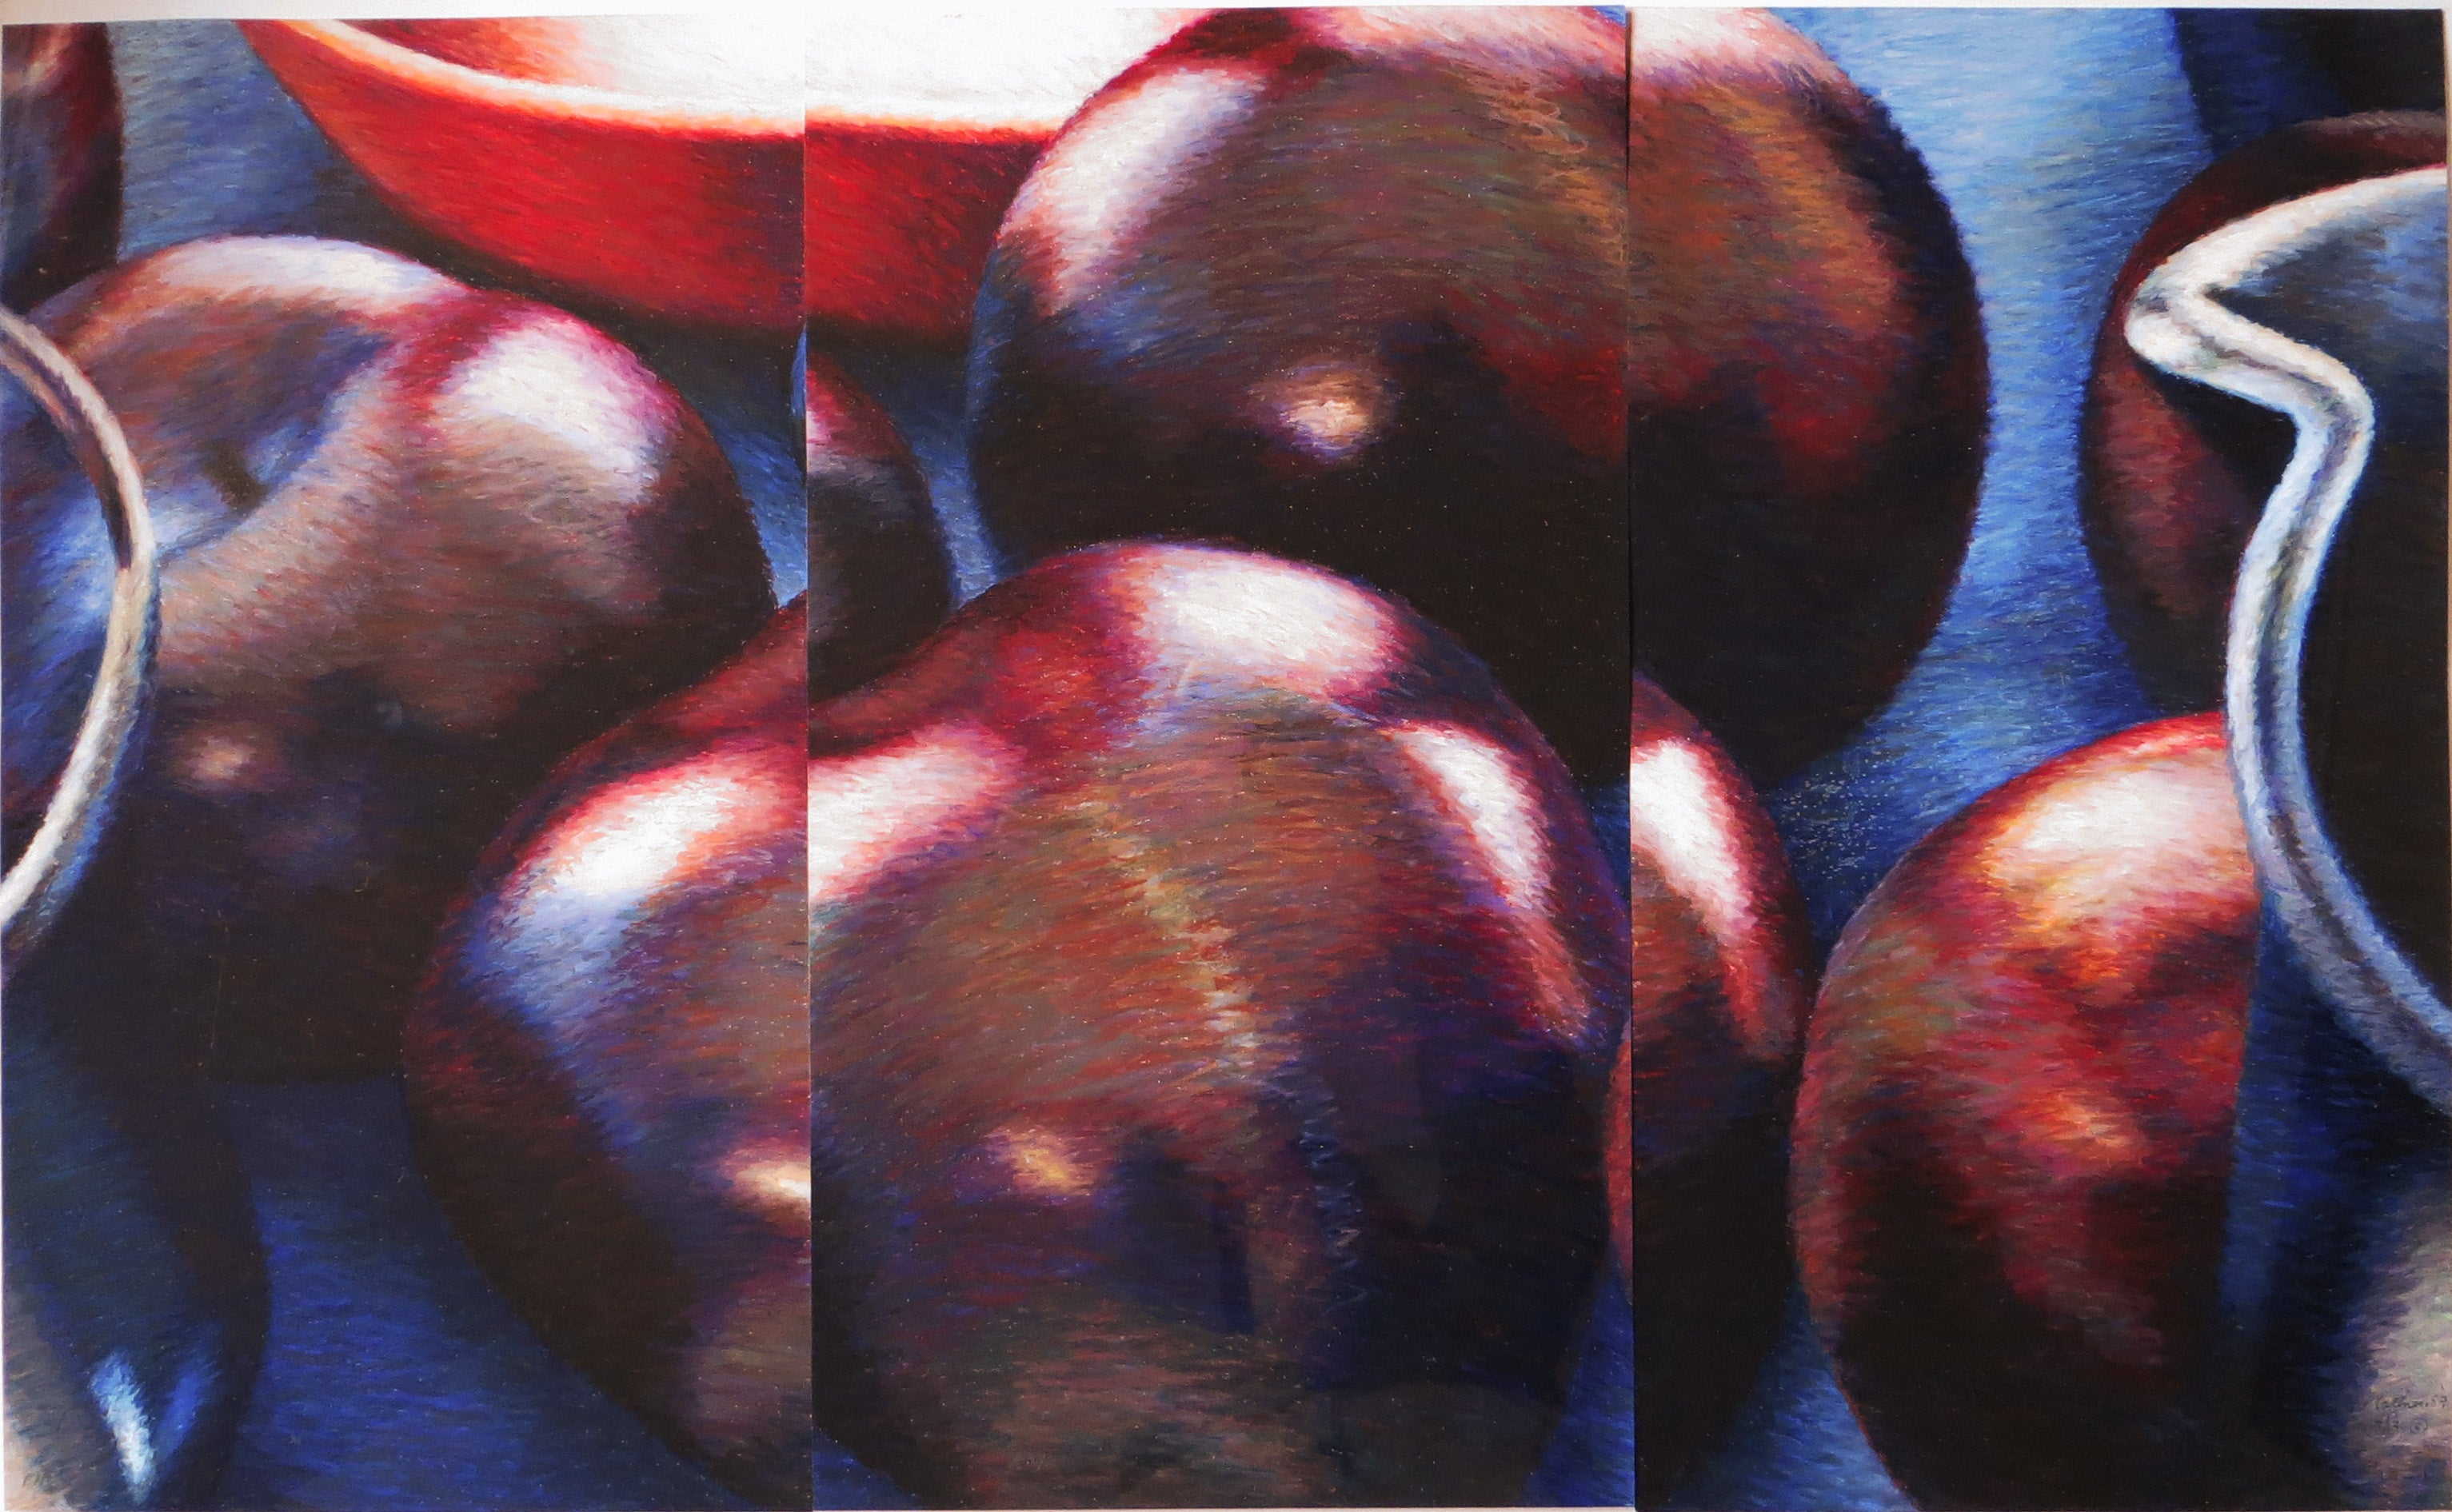 Baby Bottosso Hartan Still Life Paintings For Sale In San Francisco 1stdibs